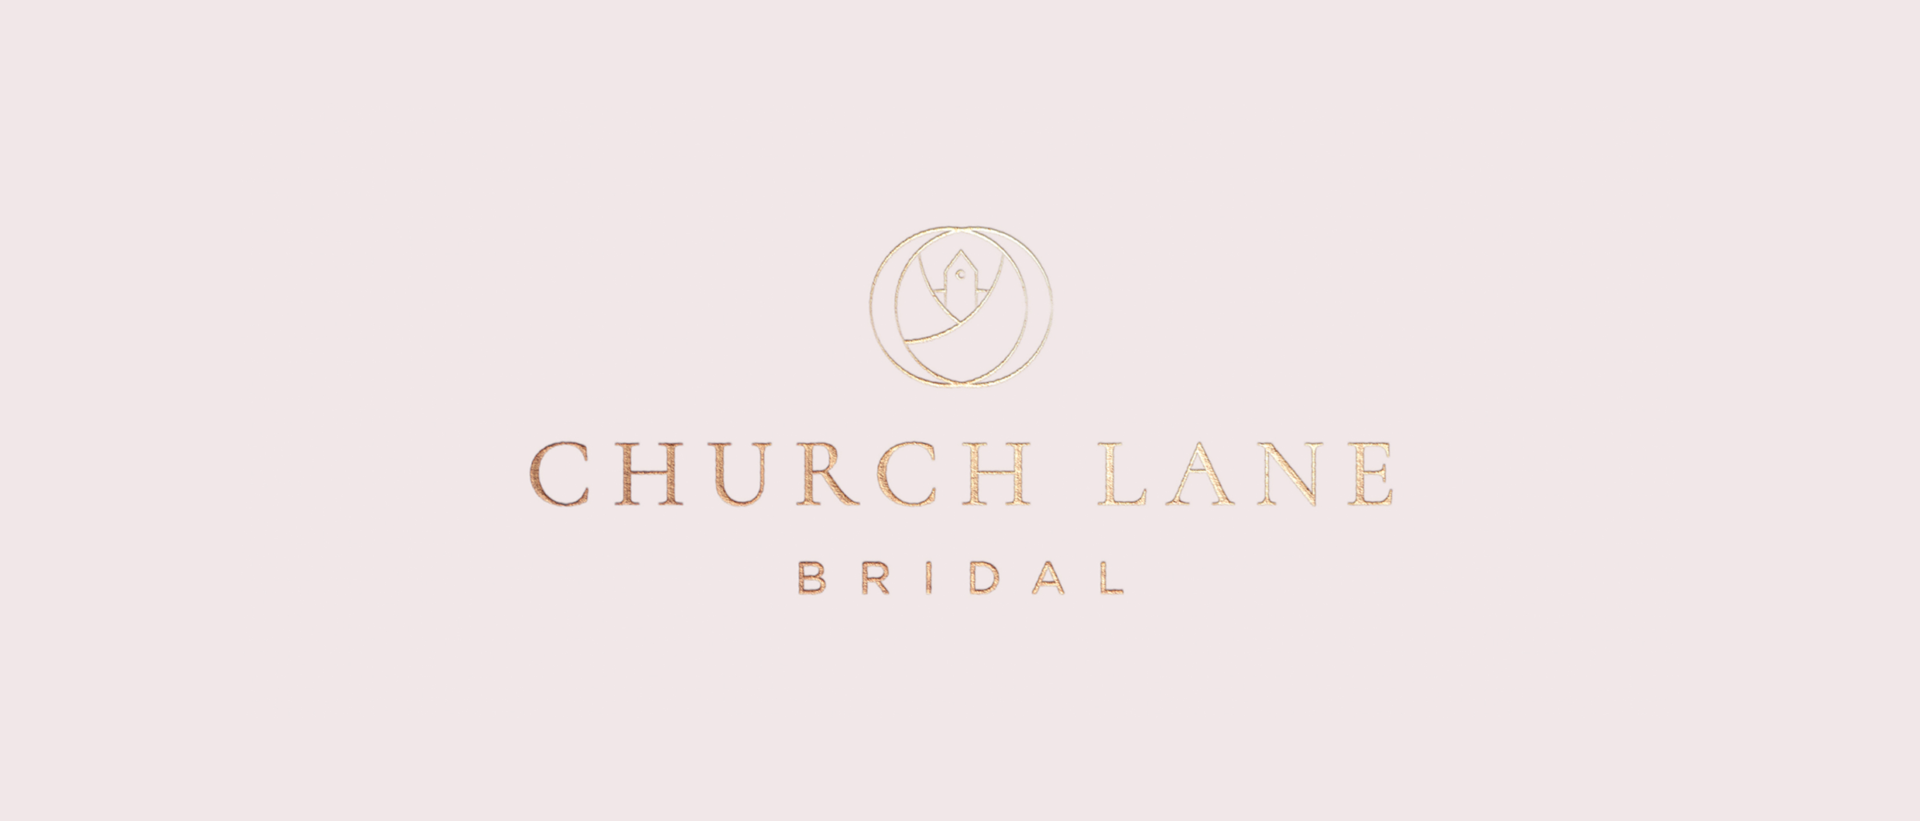 Church Lane Bridal – Logo Design